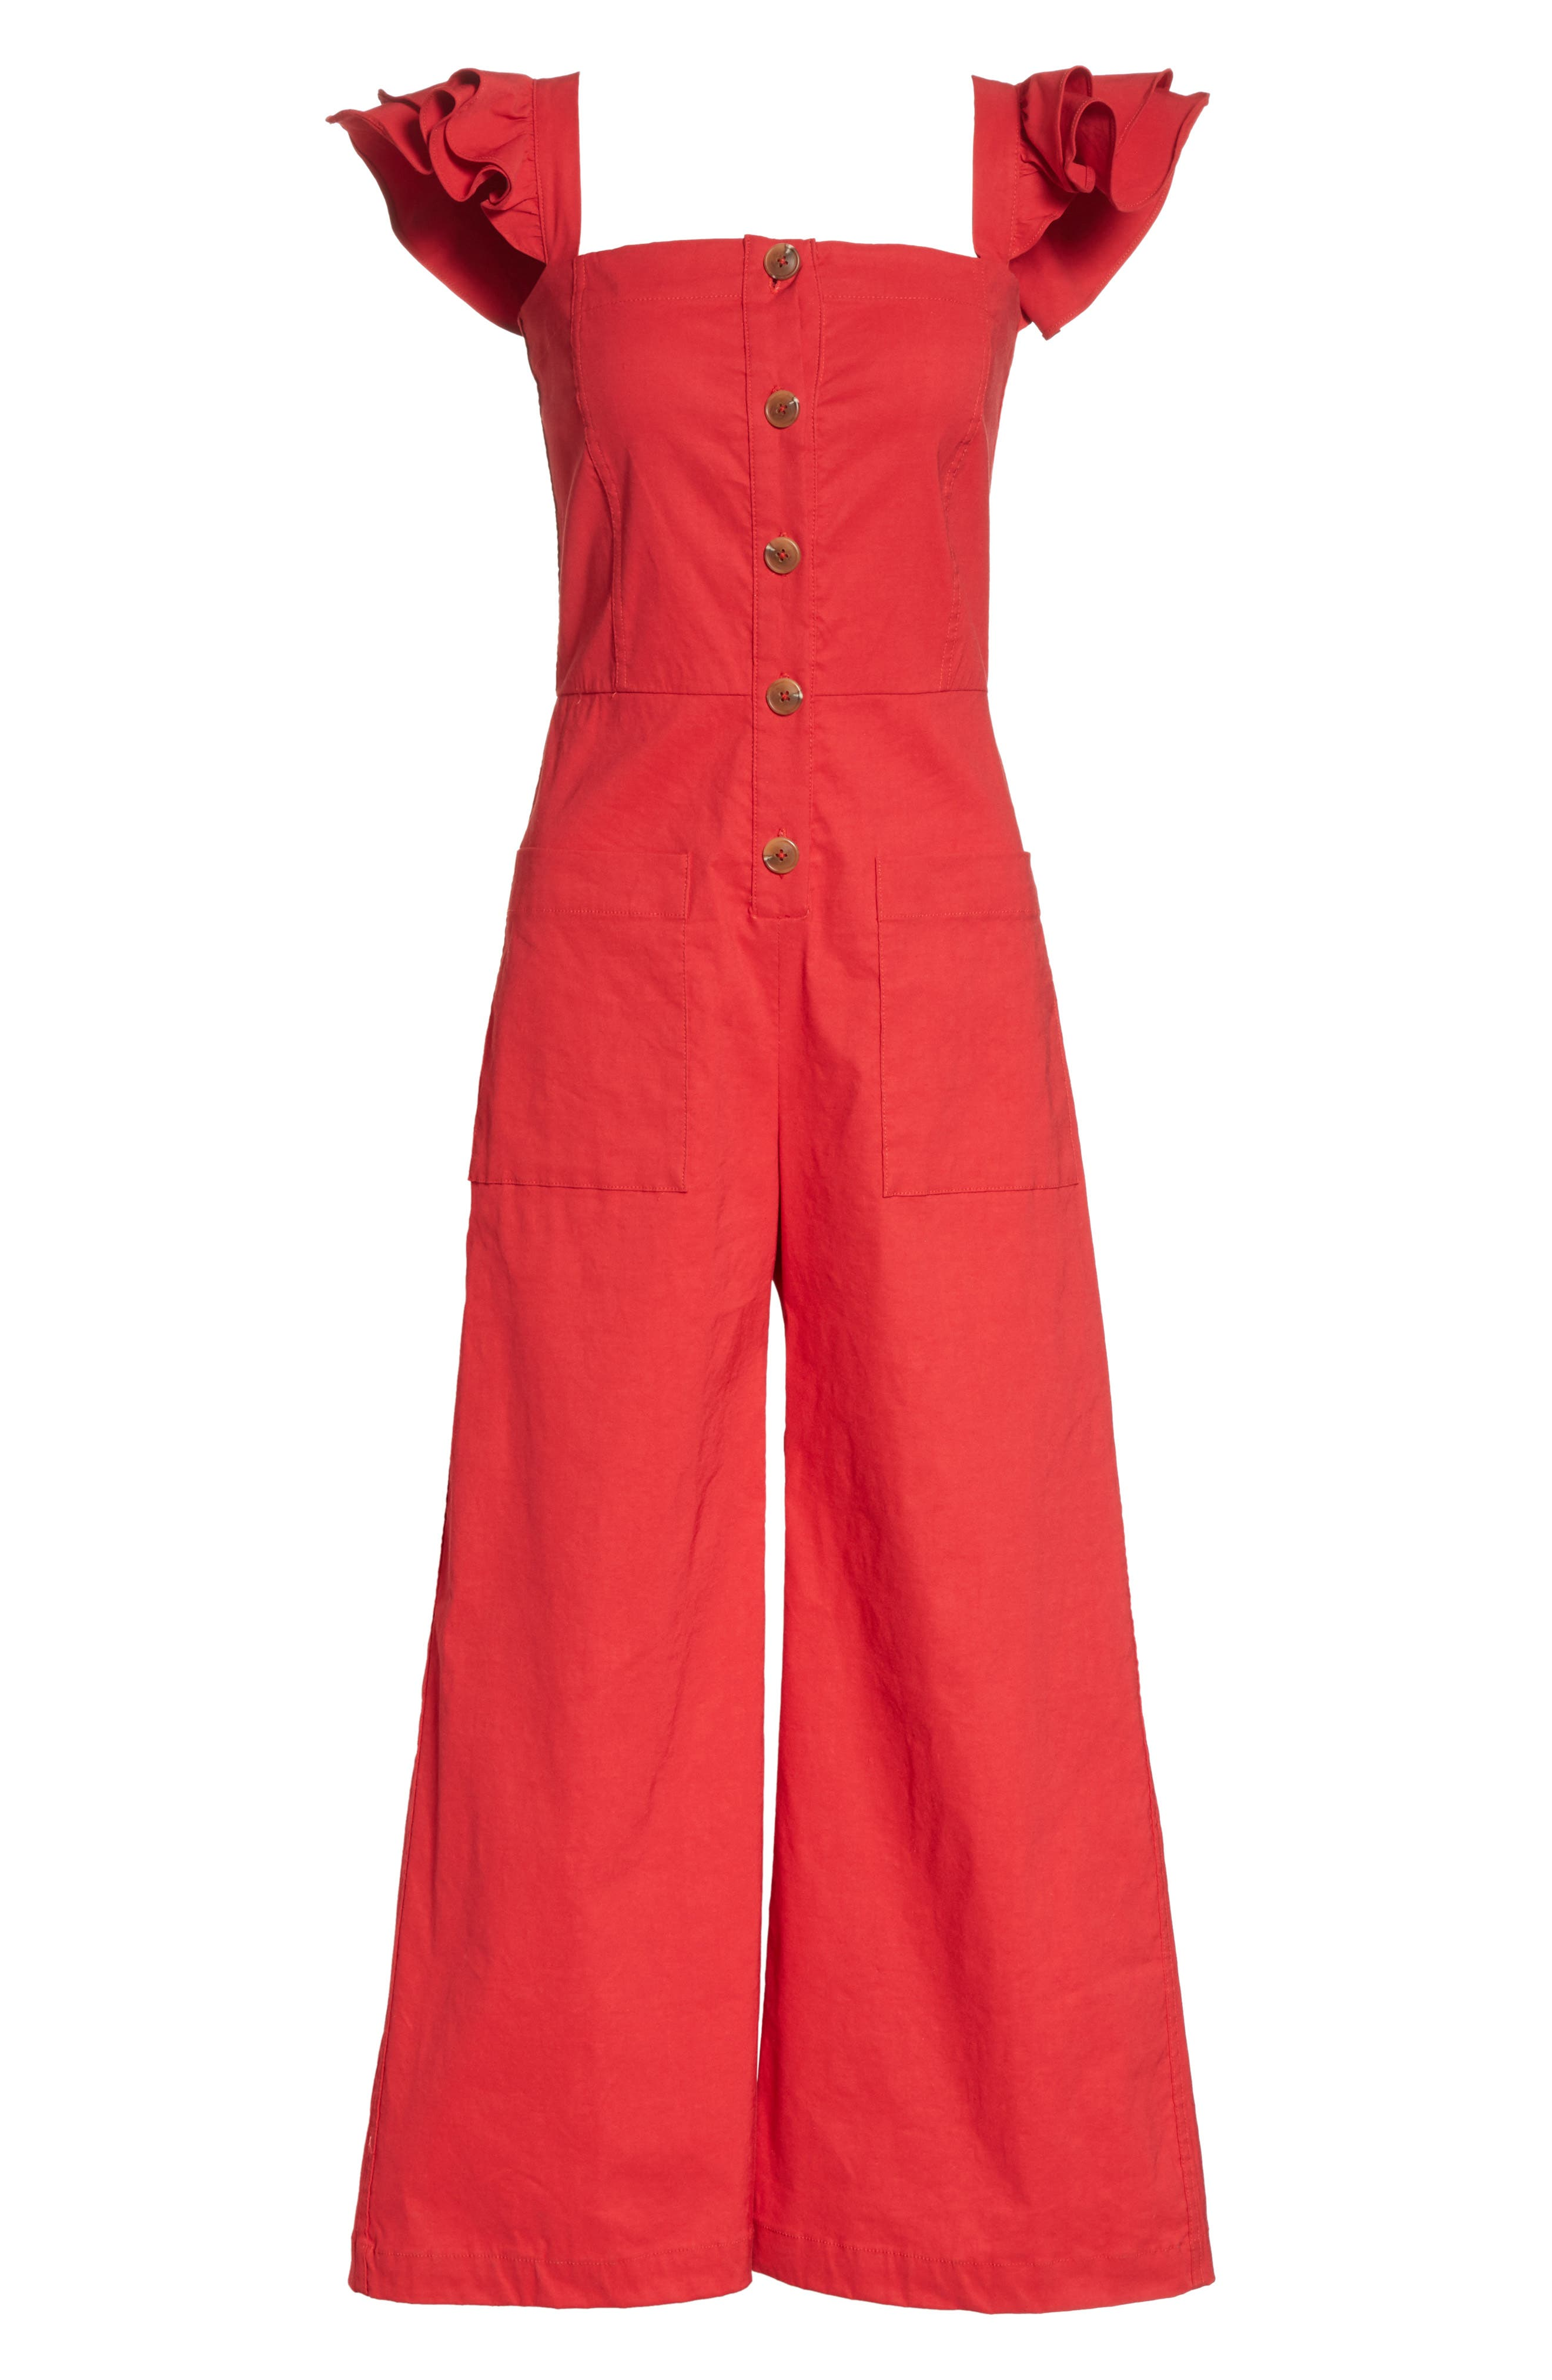 Callie Ruffle Strap Jumpsuit,                             Alternate thumbnail 6, color,                             Red